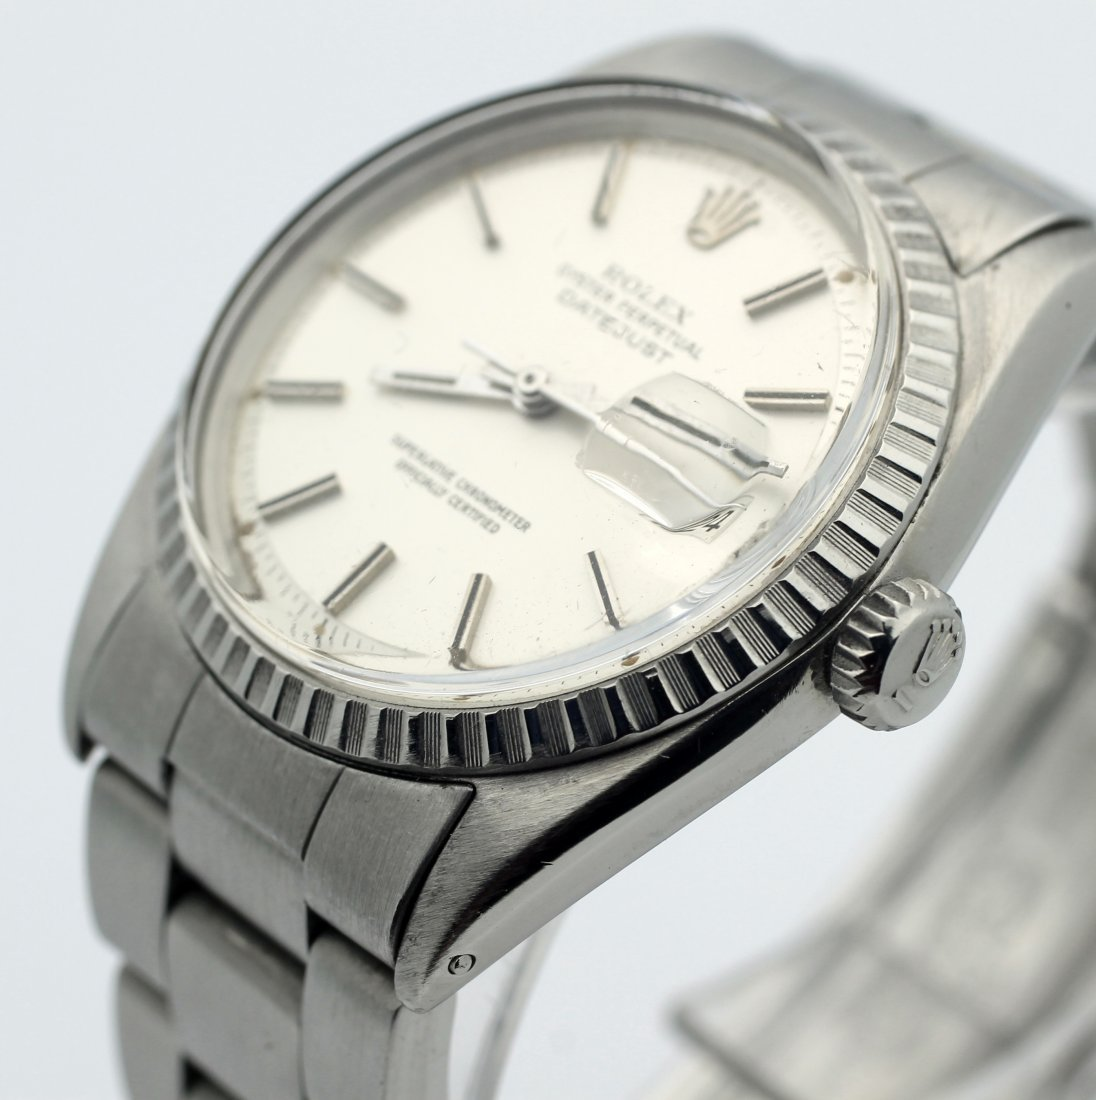 1967 ROLEX Oyster Perpetual DATEJUST Ref. 1603 - 3